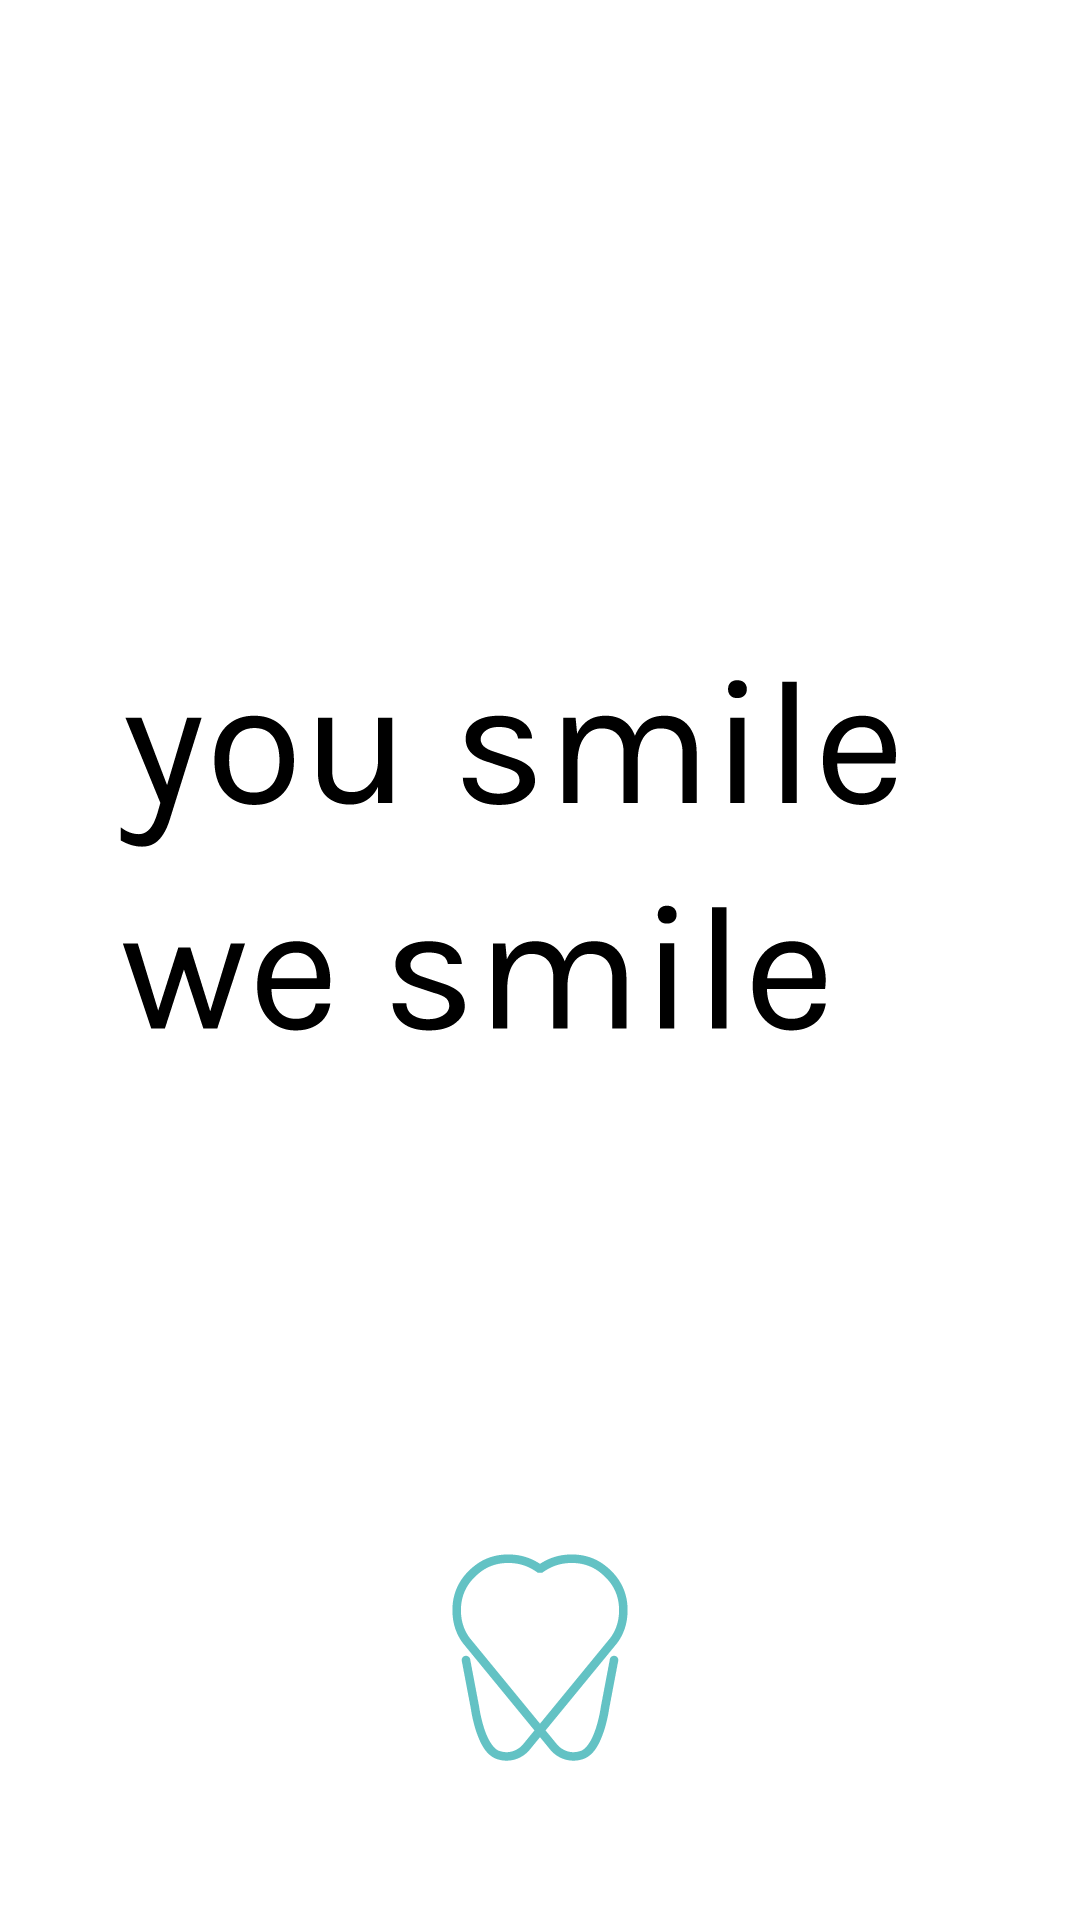 yousmile.png